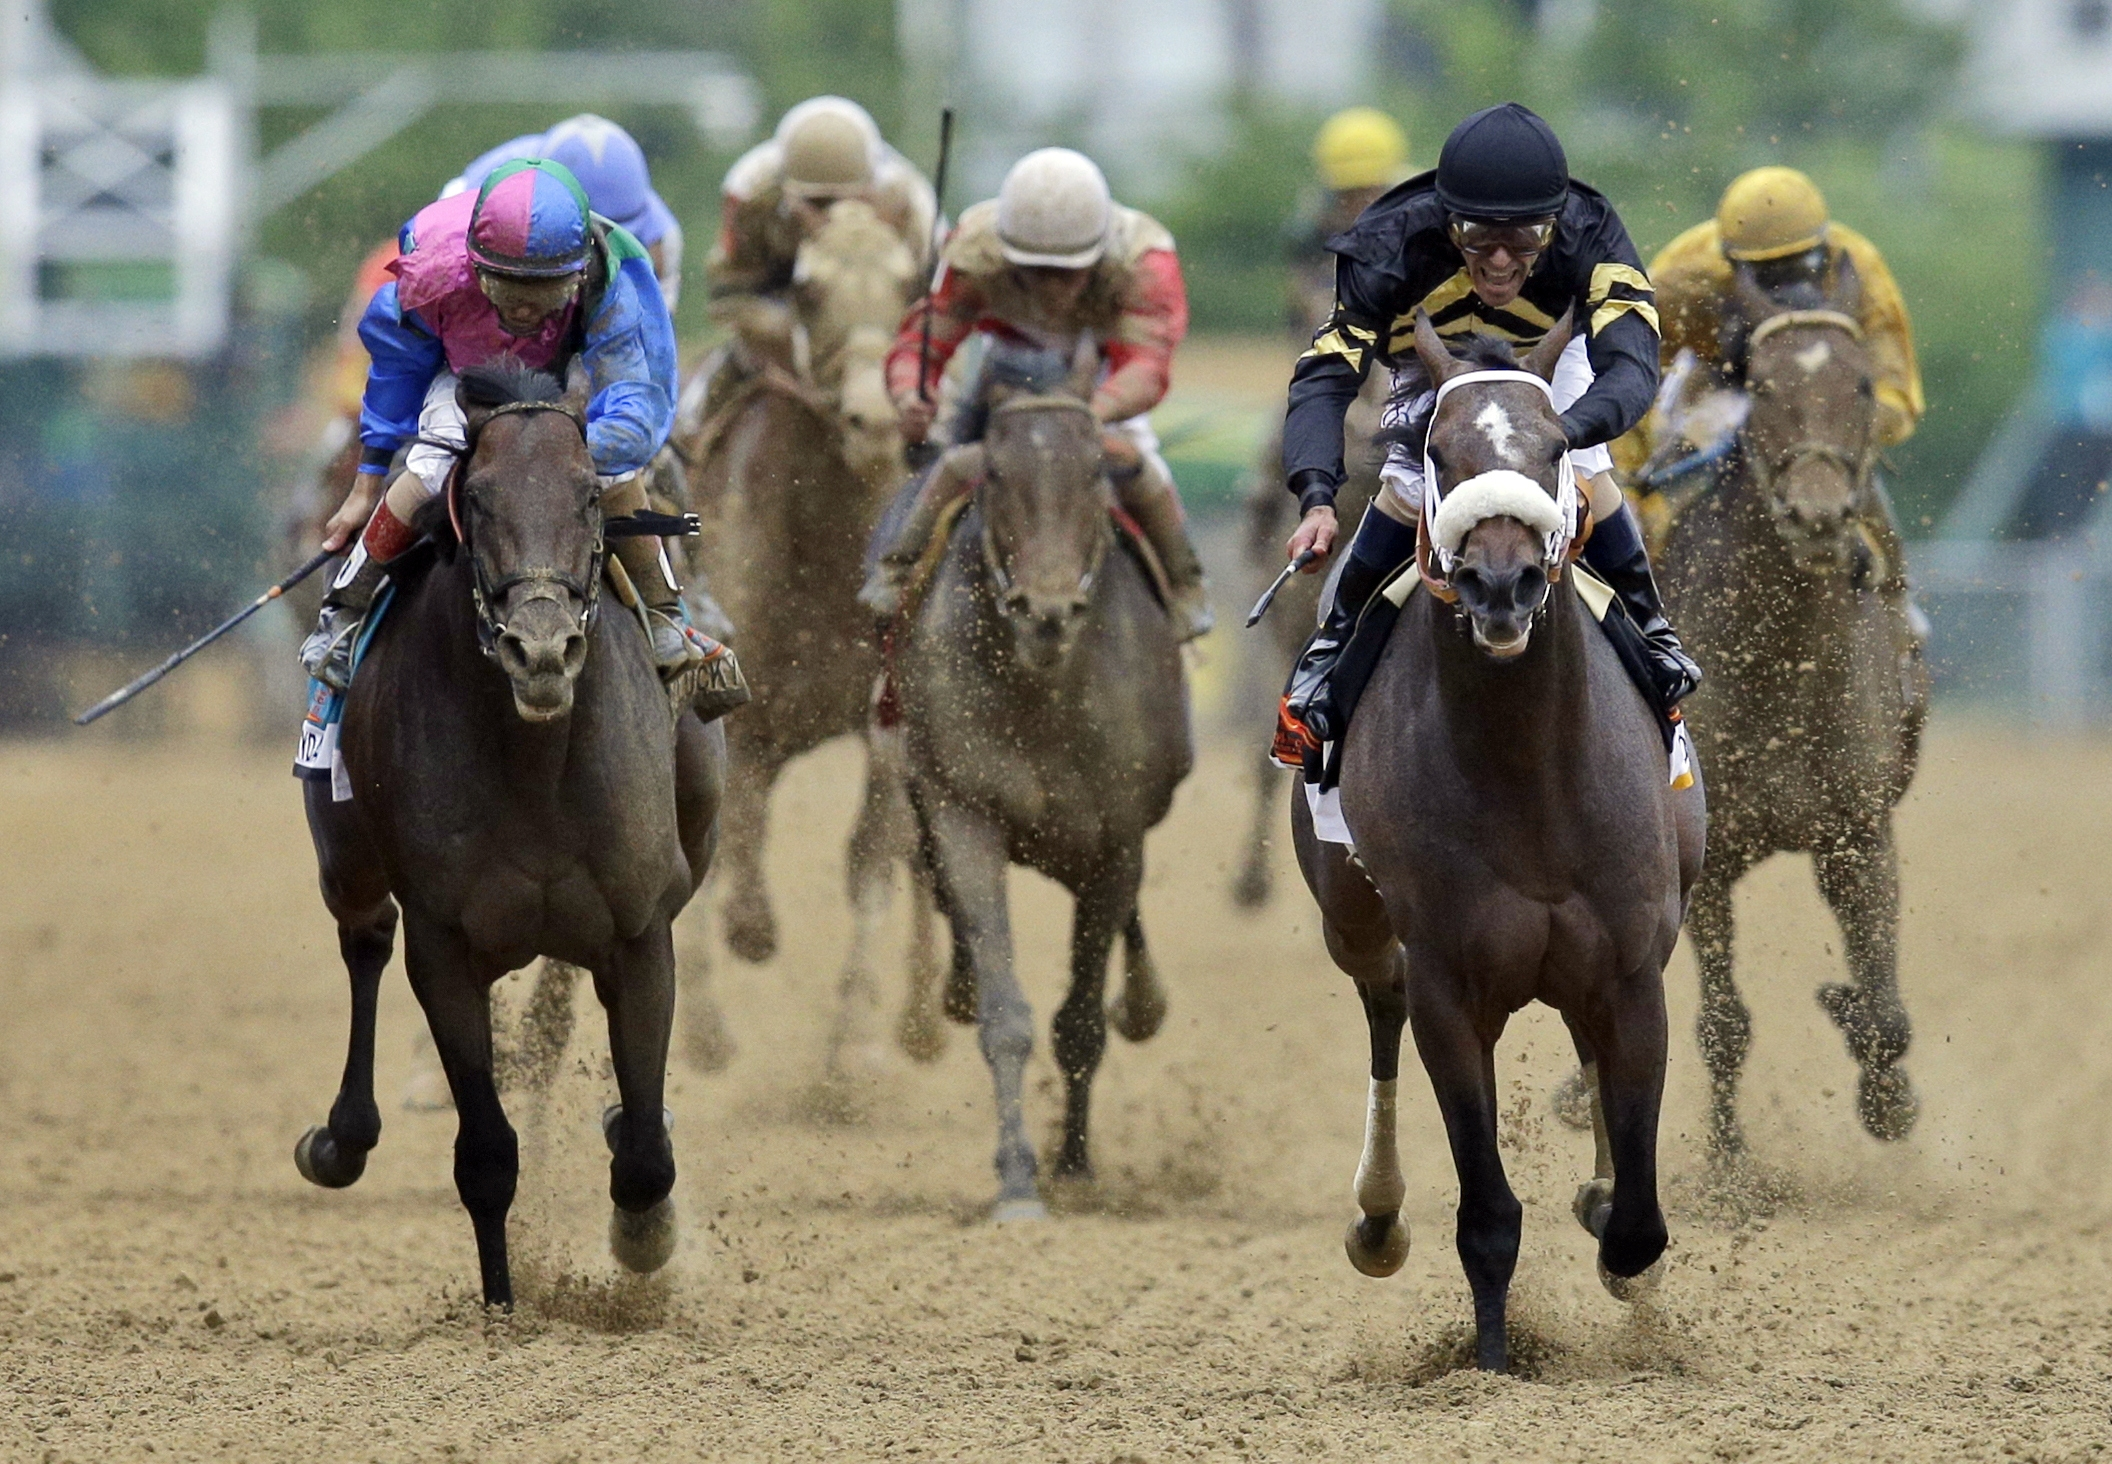 Jockey Gary Stevens came out of retirement at age 50 and rode Oxbow, second from right, to the finish line to win the 138th Preakness Stakes in May. Oxbow gave trainer D. Wayne Lukas his 14th Triple Crown win.